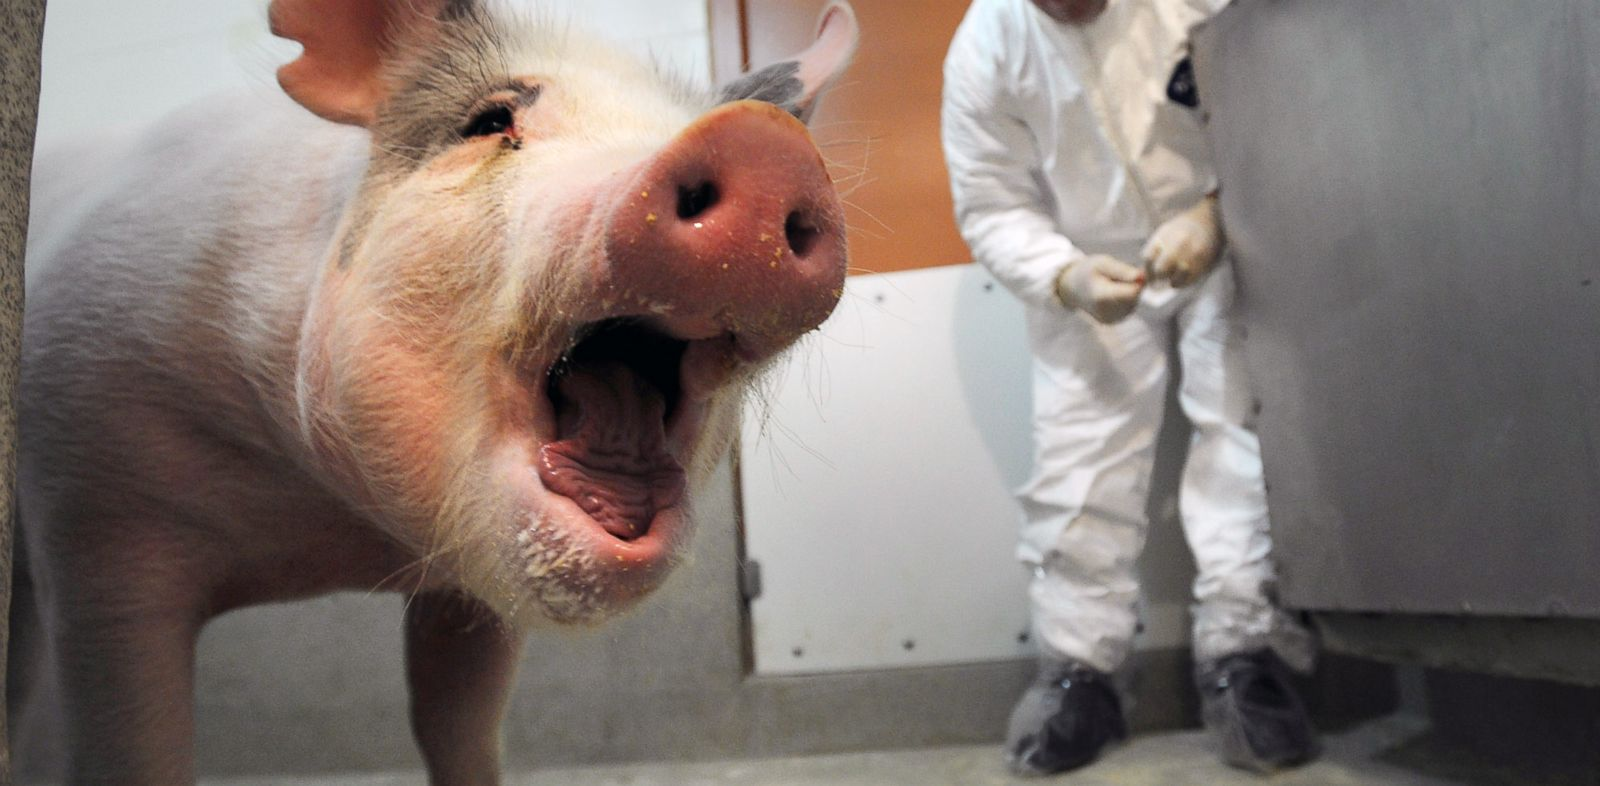 PHOTO: Taz, an Iowa State University College of Veterinary Medicine resident pig, receives a standard physical examination in this Dec. 6, 2010 photo.